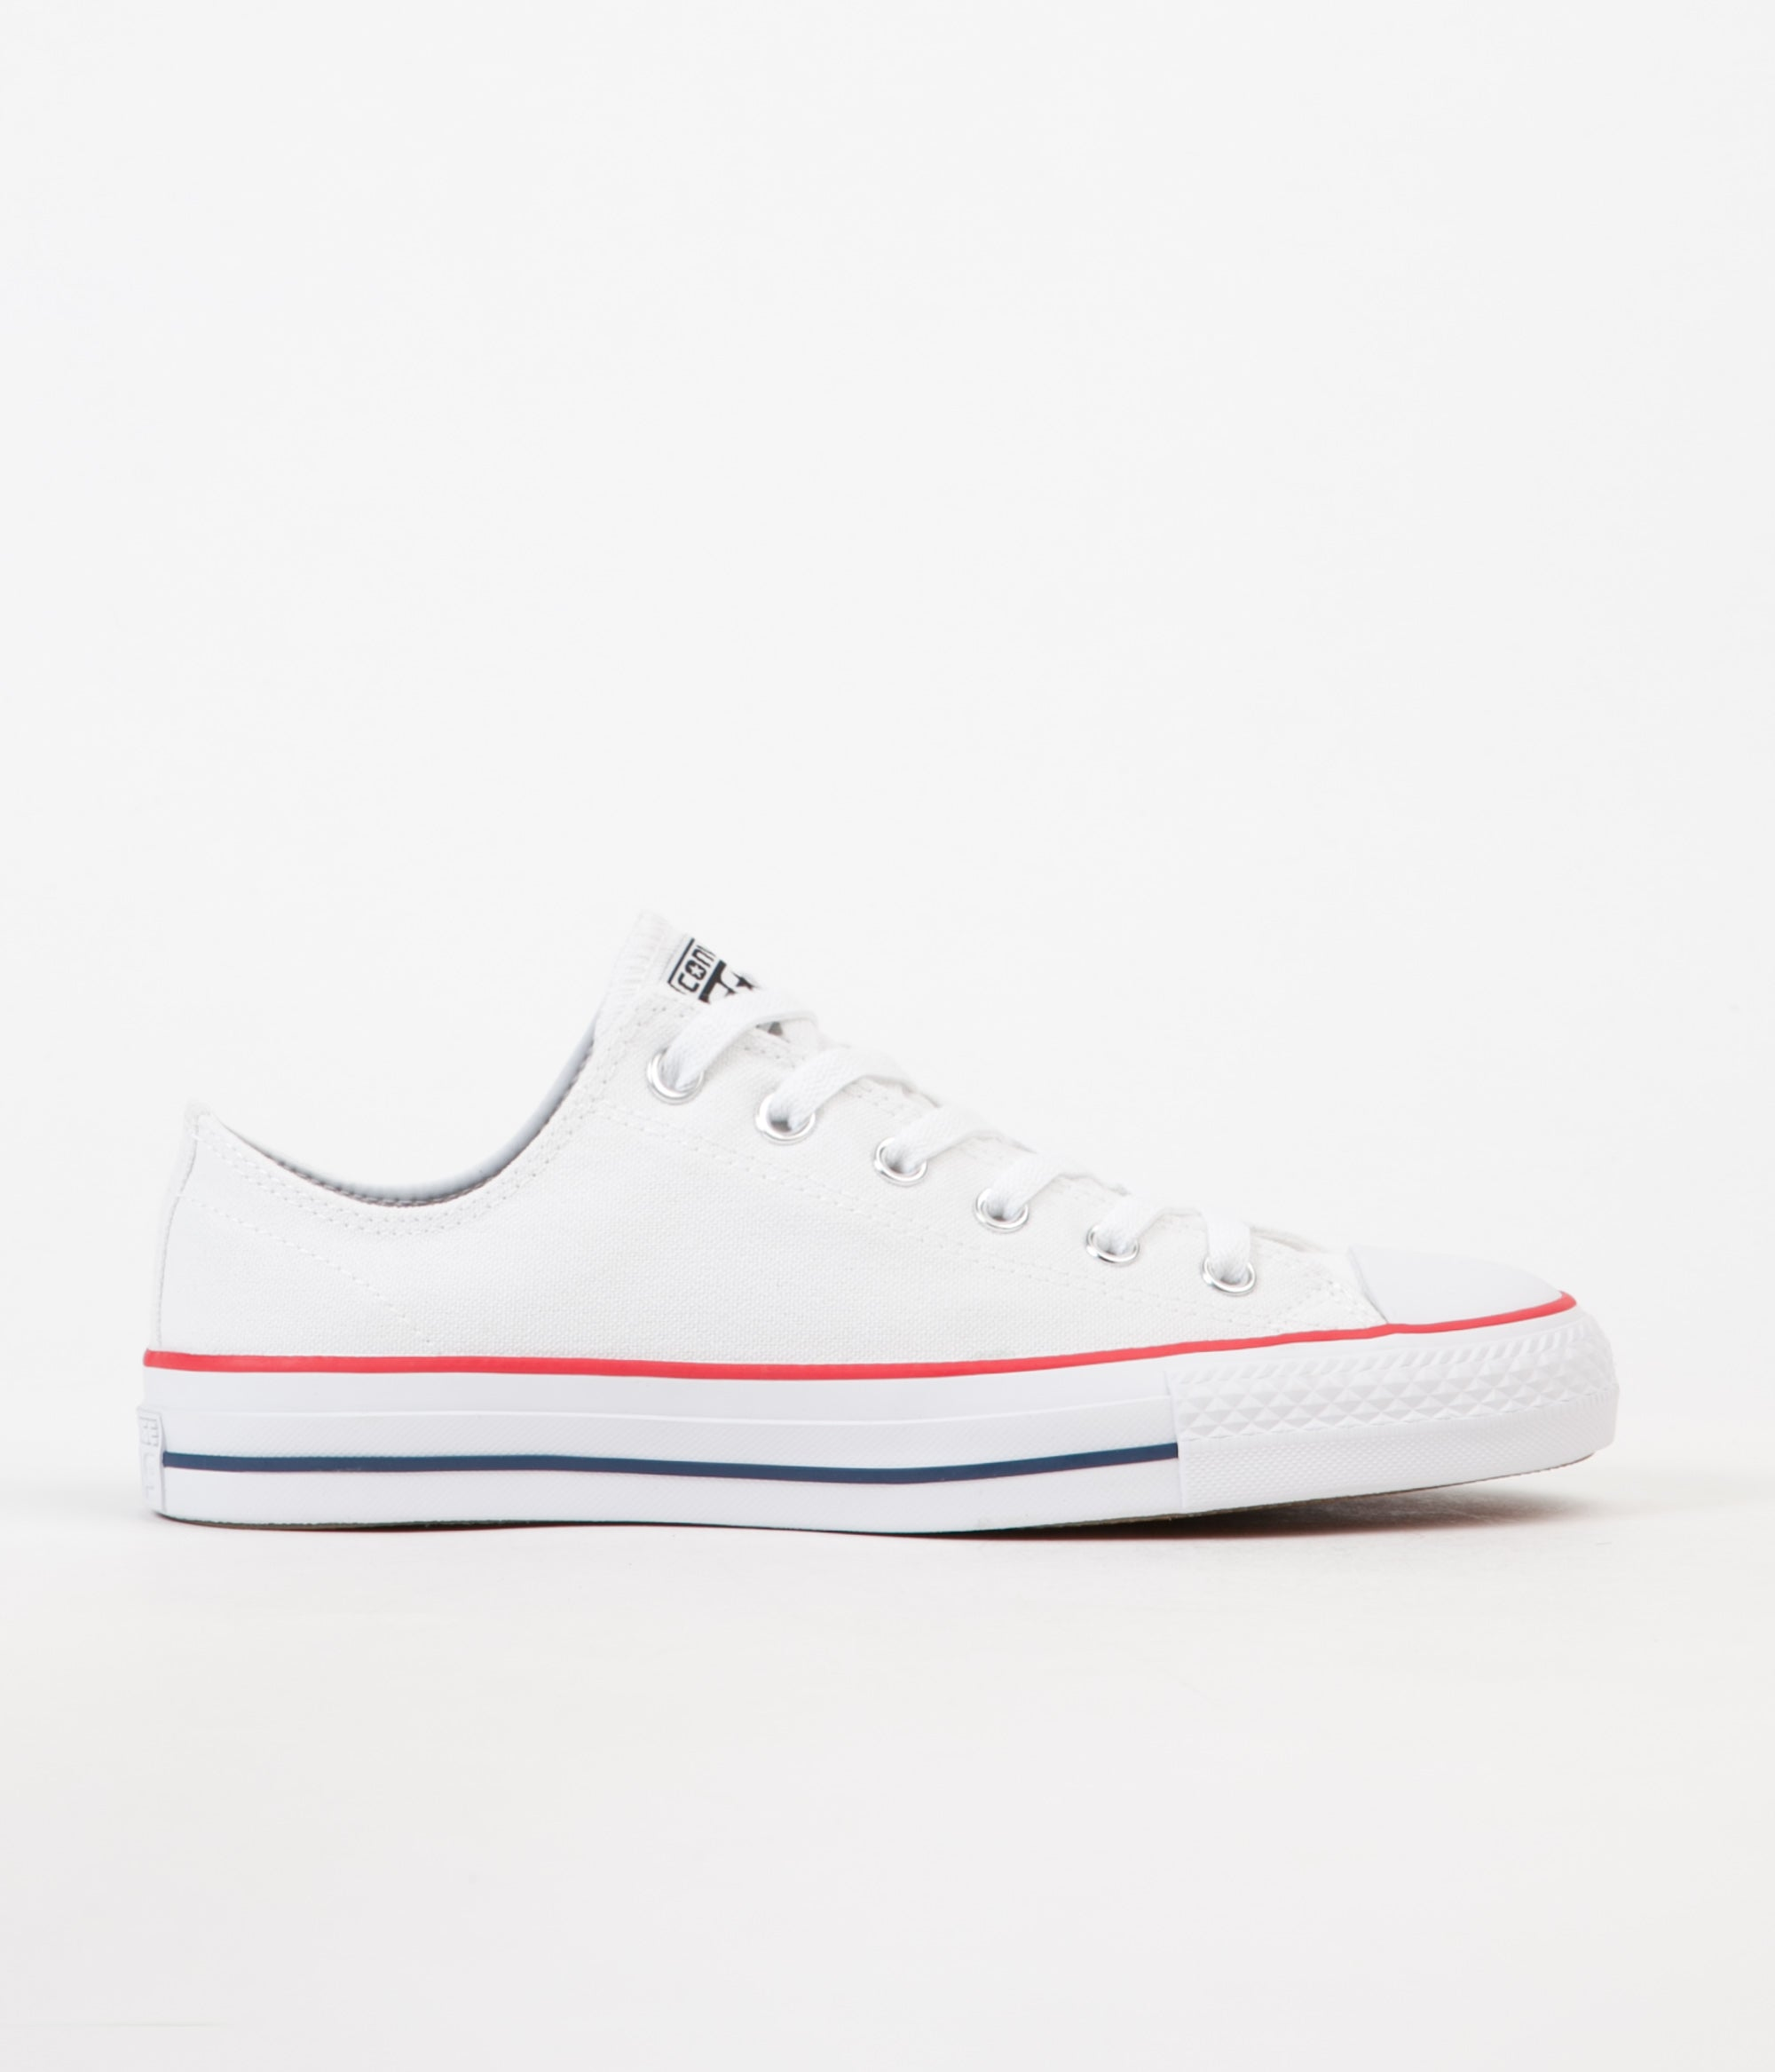 Chaussure Converse CTAS Pro Ox White Red Insignia